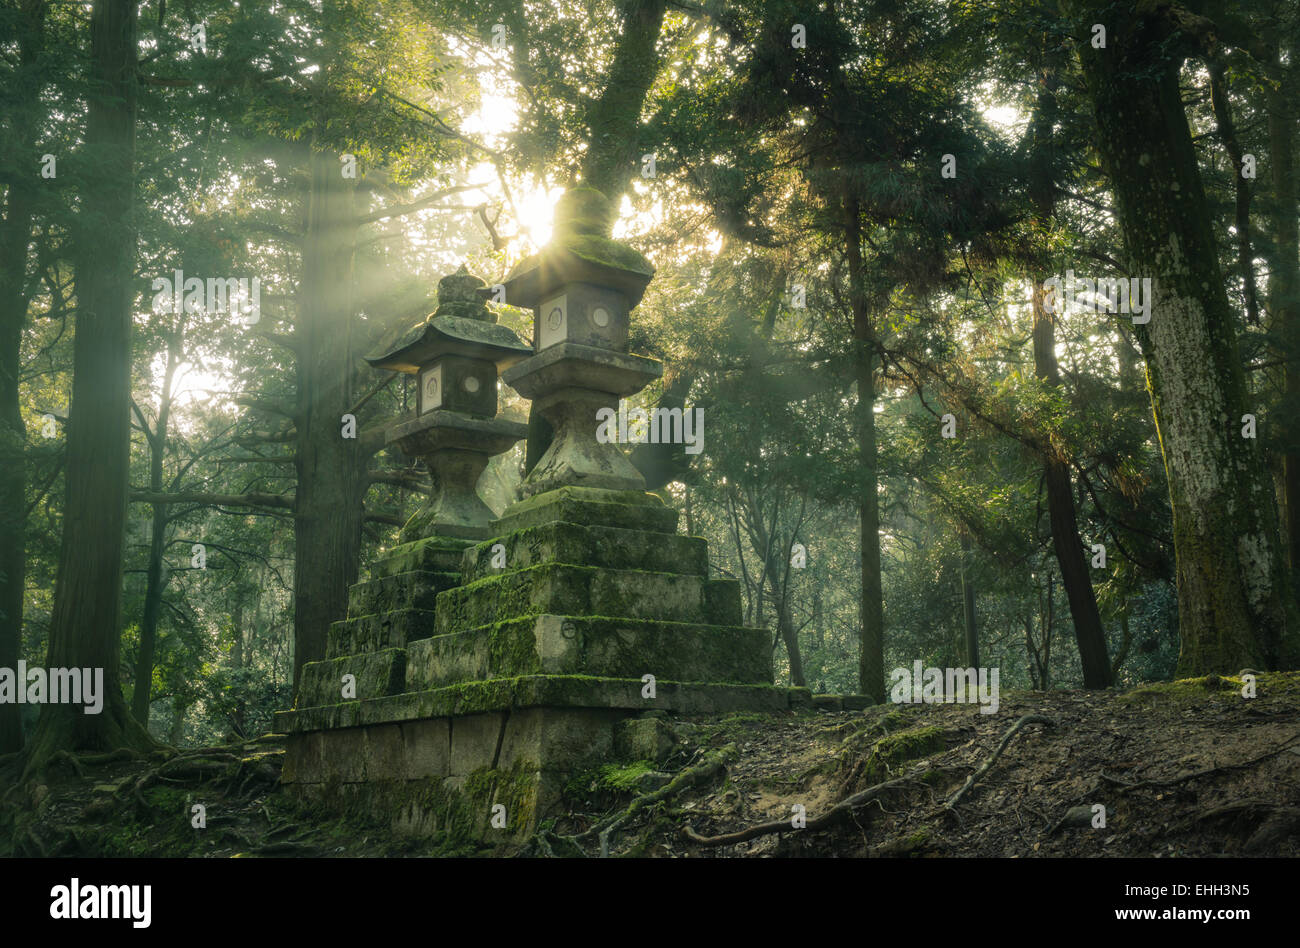 Morning sun shines behind two ancient Japanese stone lanterns in the forest near Kasuga Grand Shrine, Nara, Japan - Stock Image